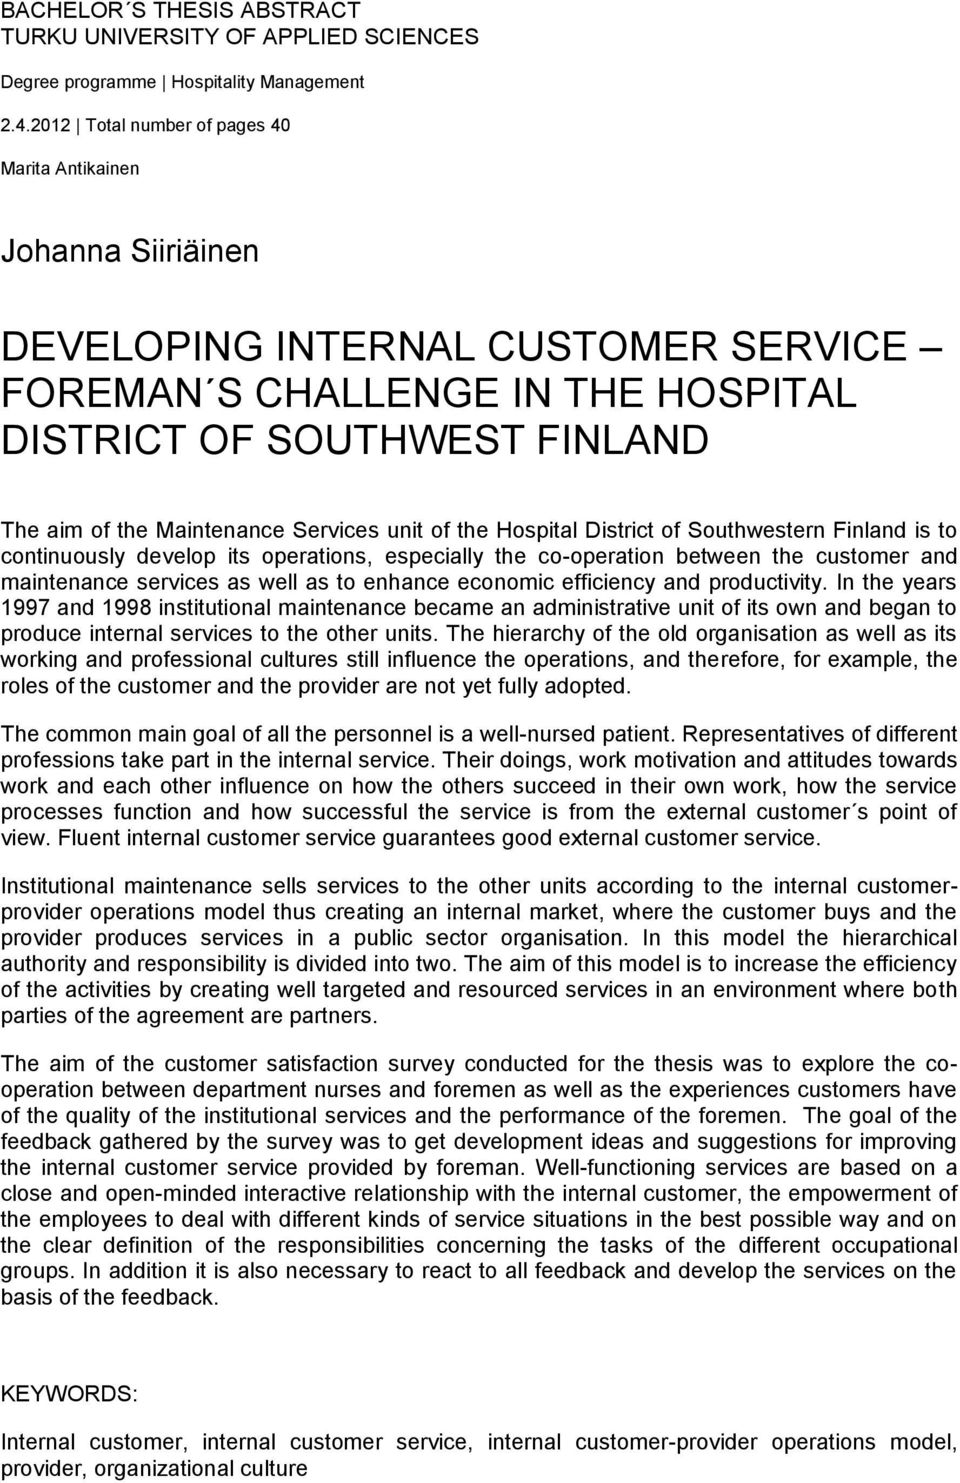 Services unit of the Hospital District of Southwestern Finland is to continuously develop its operations, especially the co-operation between the customer and maintenance services as well as to